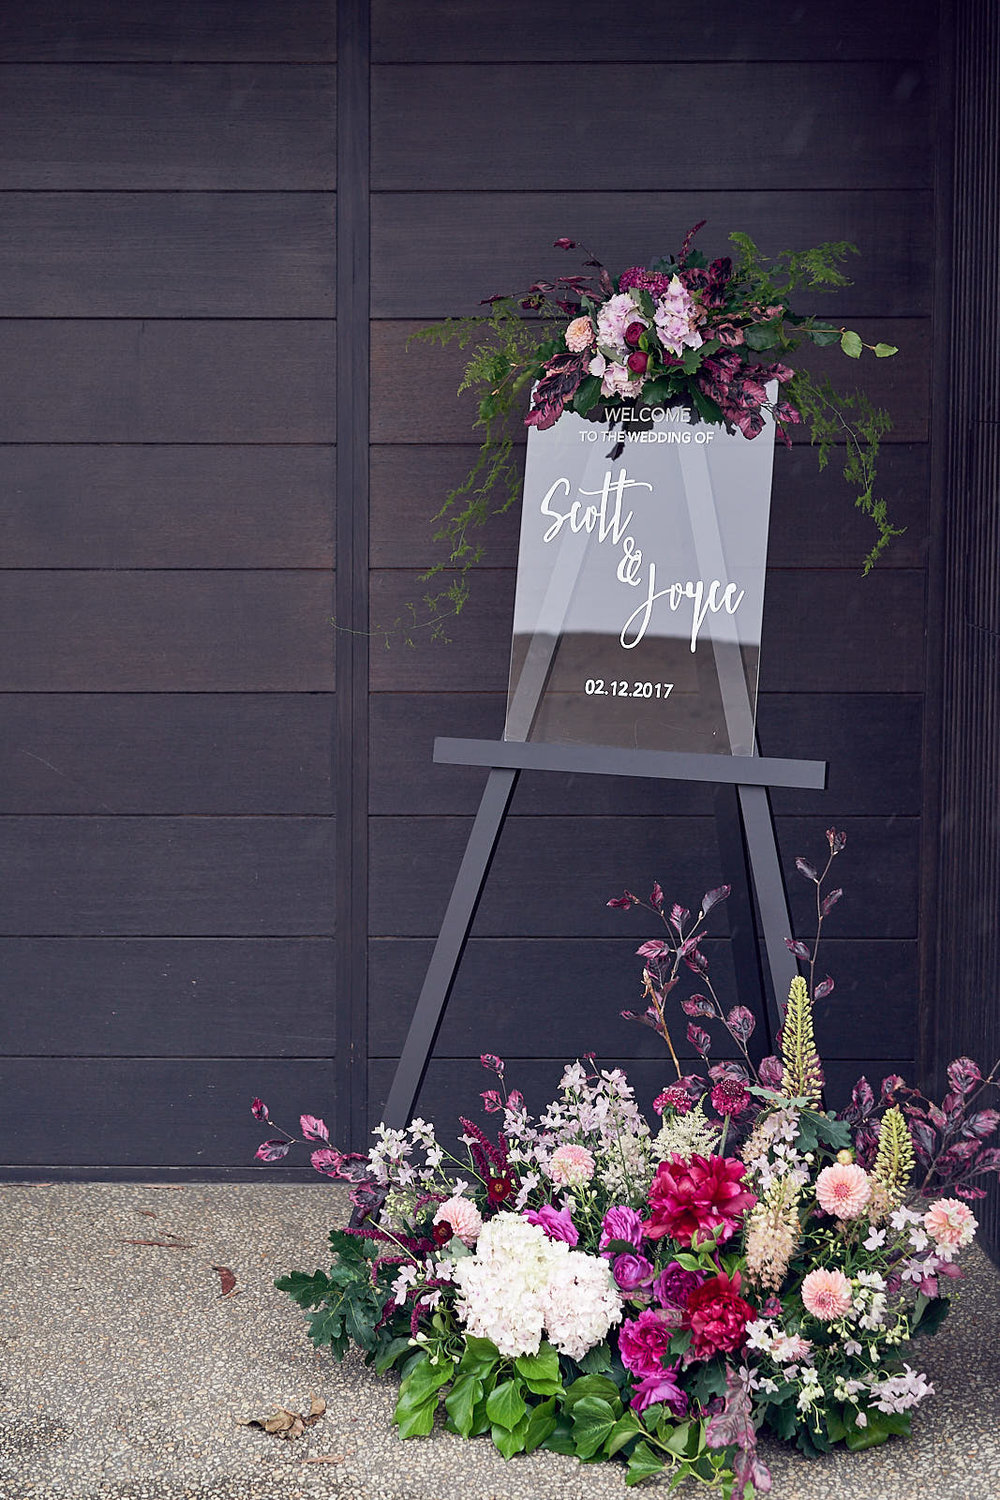 J & S Port Phillip Estate Wedding by Lost In Love Photography. #weddingsign